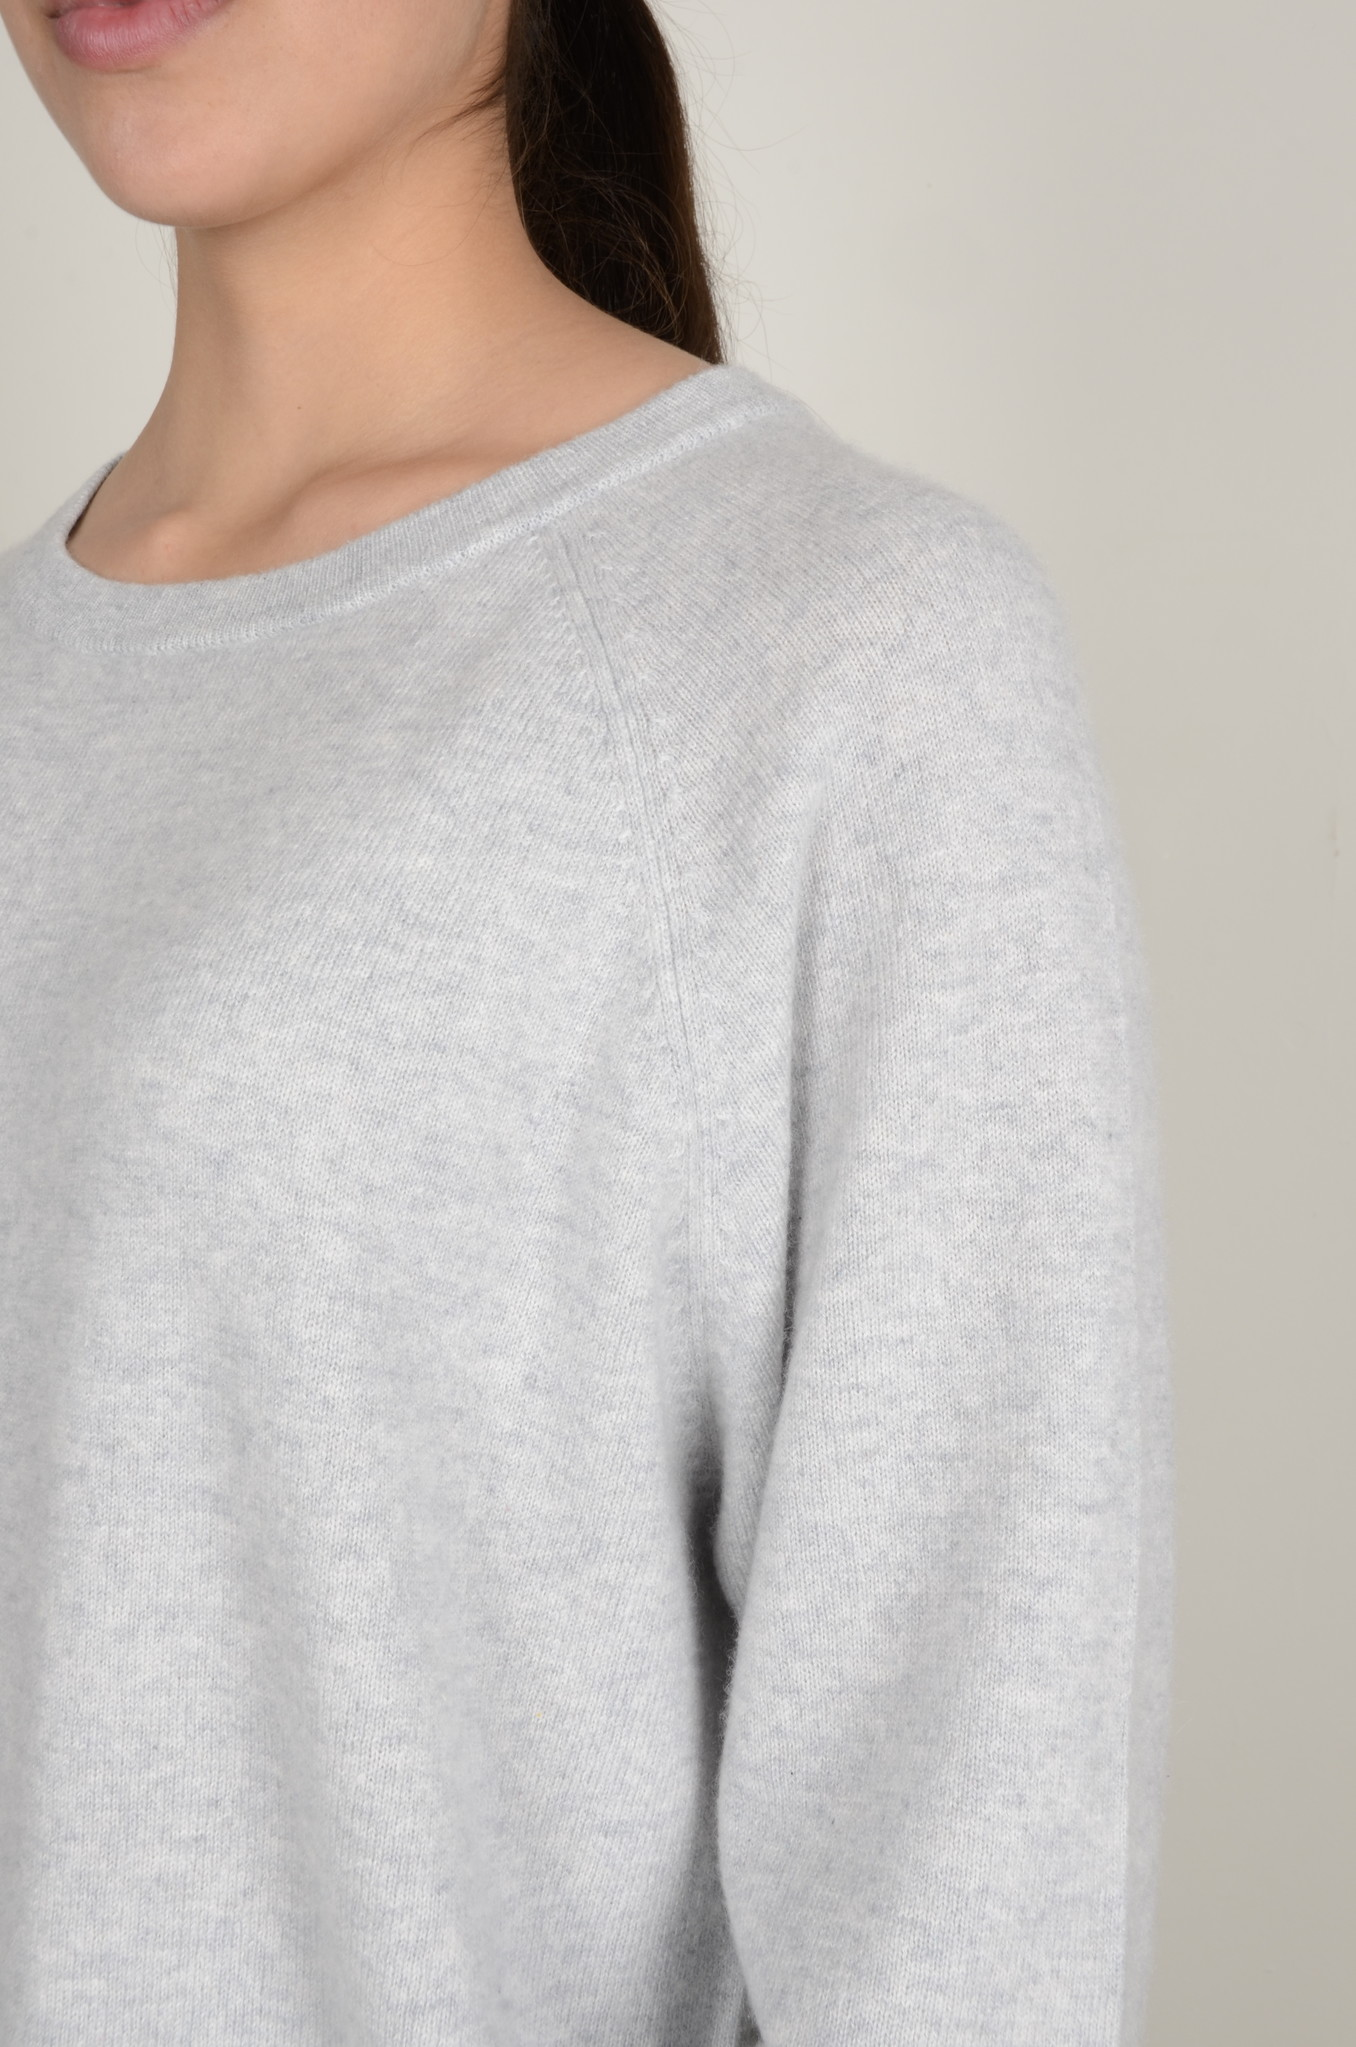 CAROLINA CASHMERE KNIT IN LIGHT GREY-5